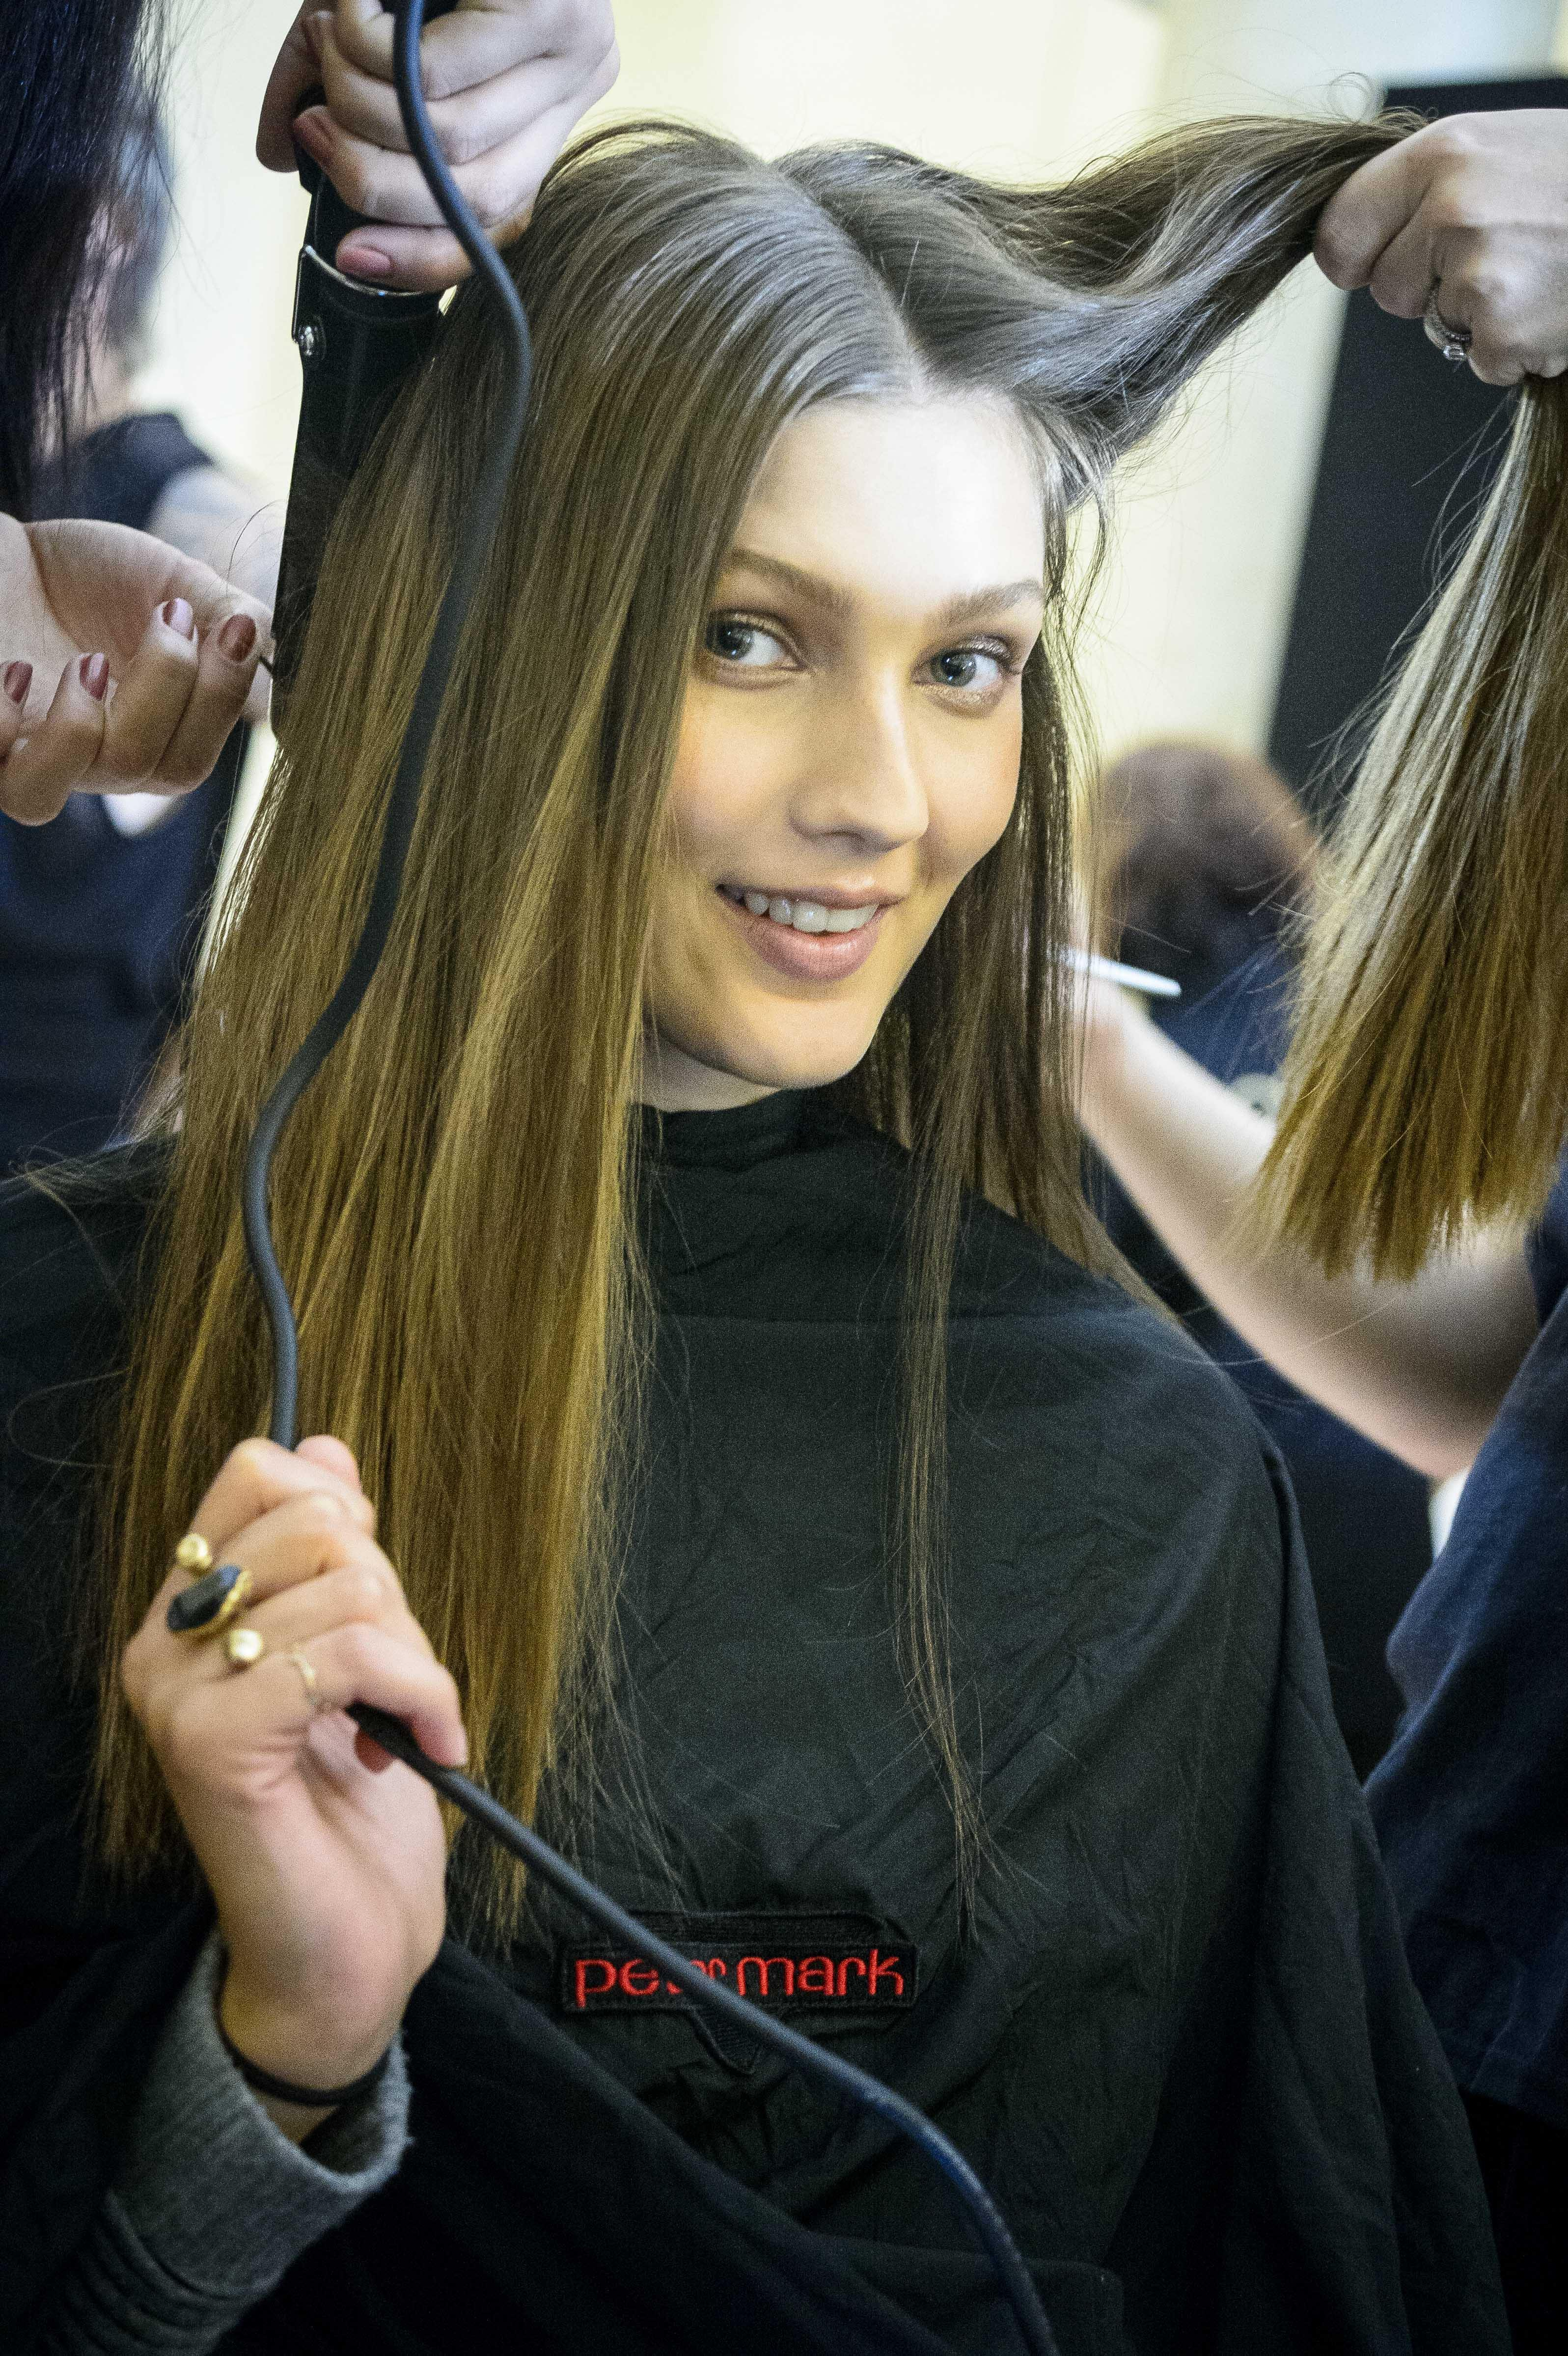 Dyeing blonde hair brown: All Things Hair - IMAGE - What you should know before dyeing your blonde hair